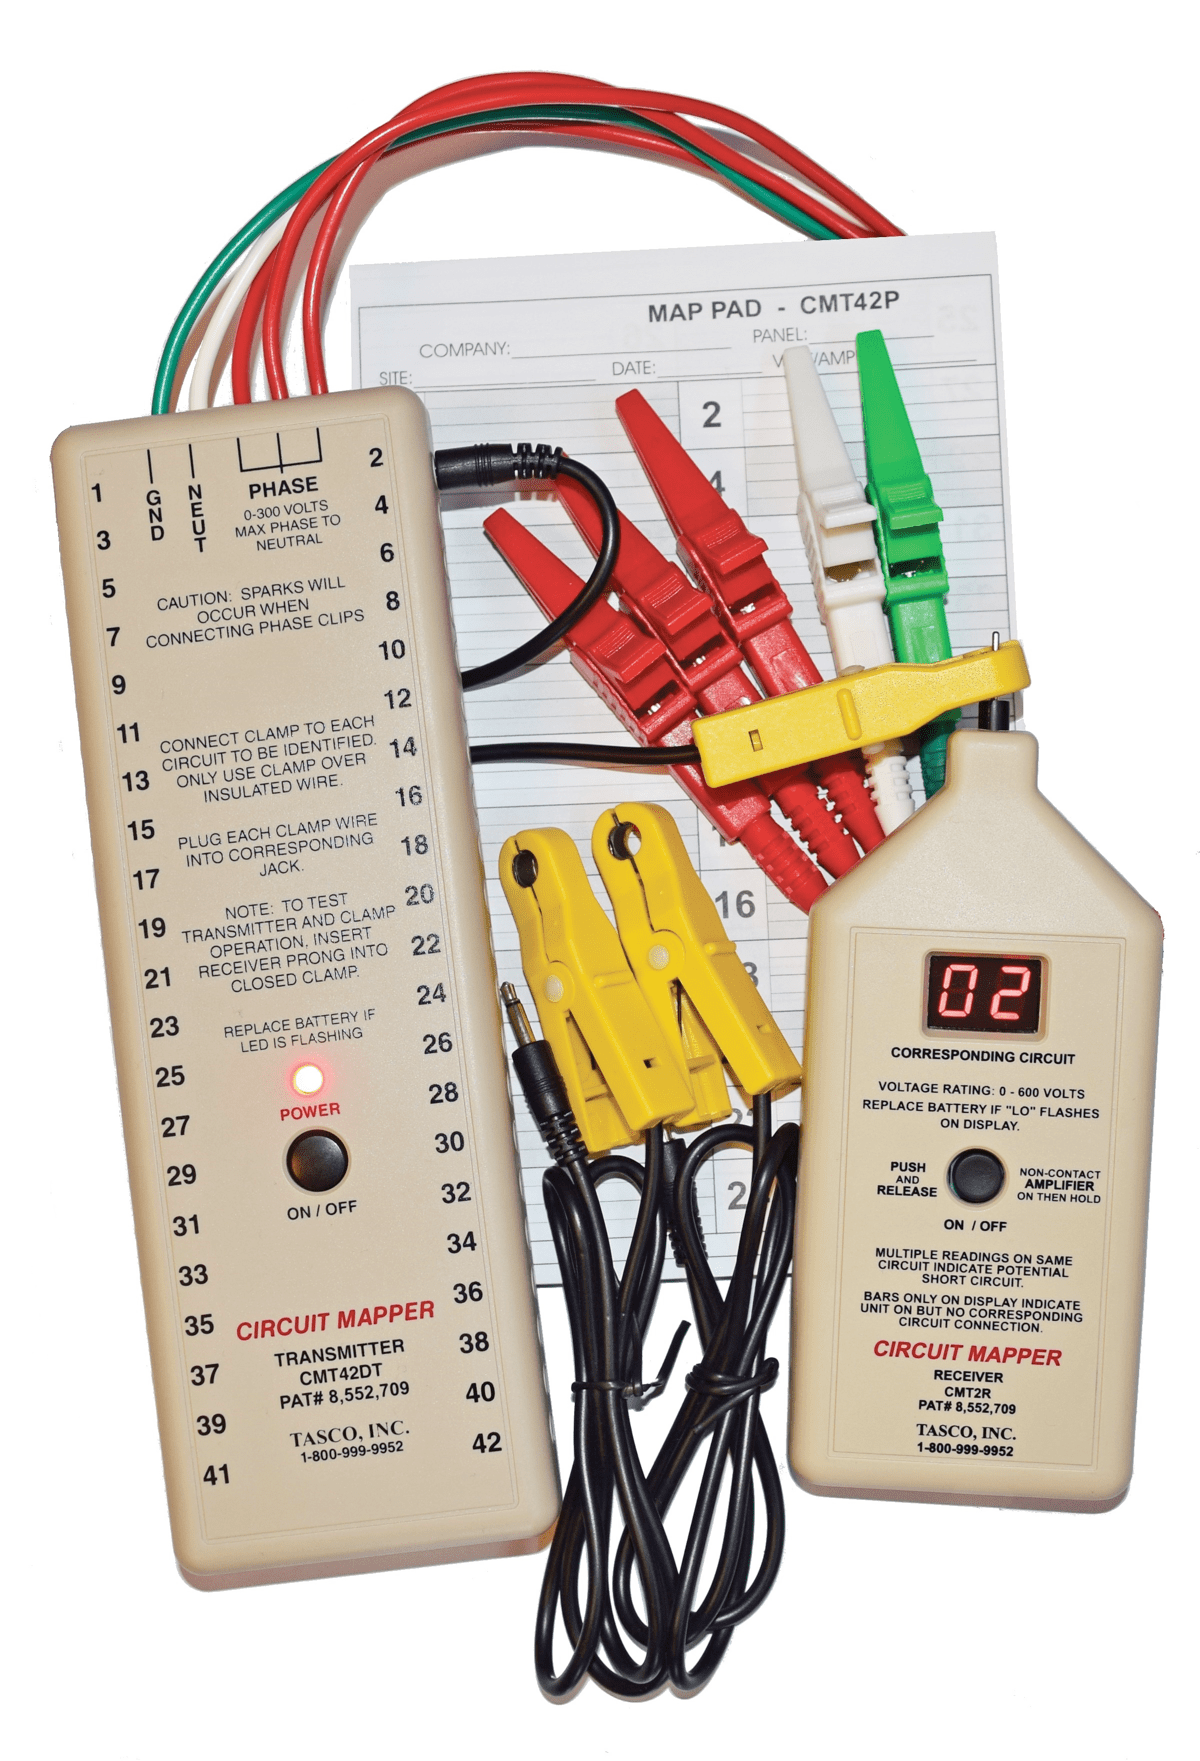 The only way to ensure regulatory compliance and construction safety is  with a workable circuit mapping